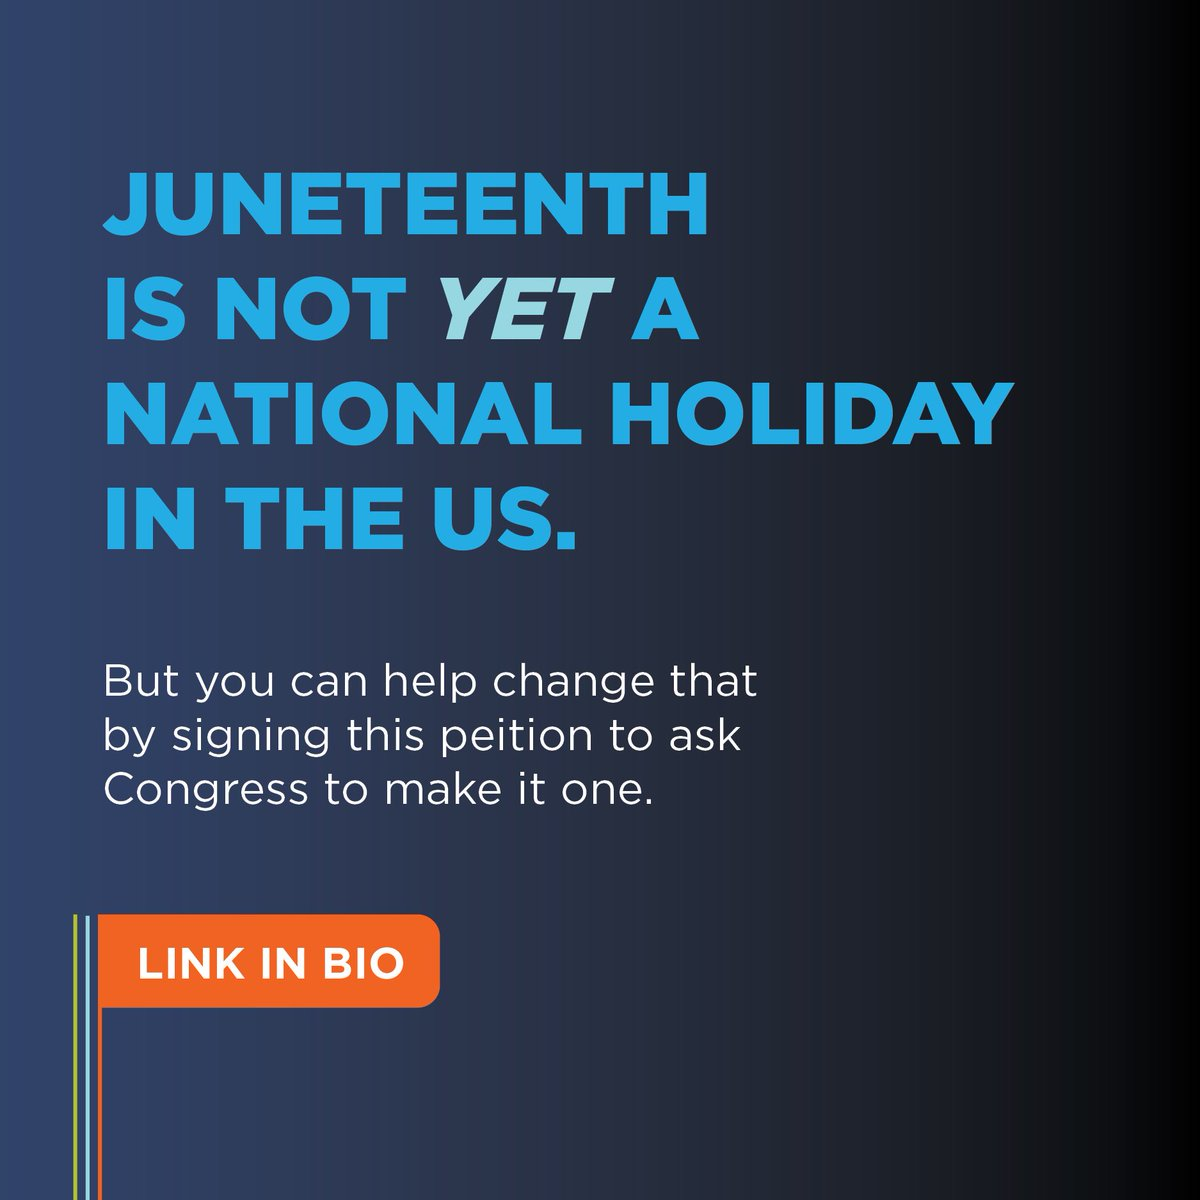 Sign this petition to ask Congress to make #Juneteenth a national holiday here: https://t.co/K8ltU5prV2 https://t.co/bLgD3jmf86